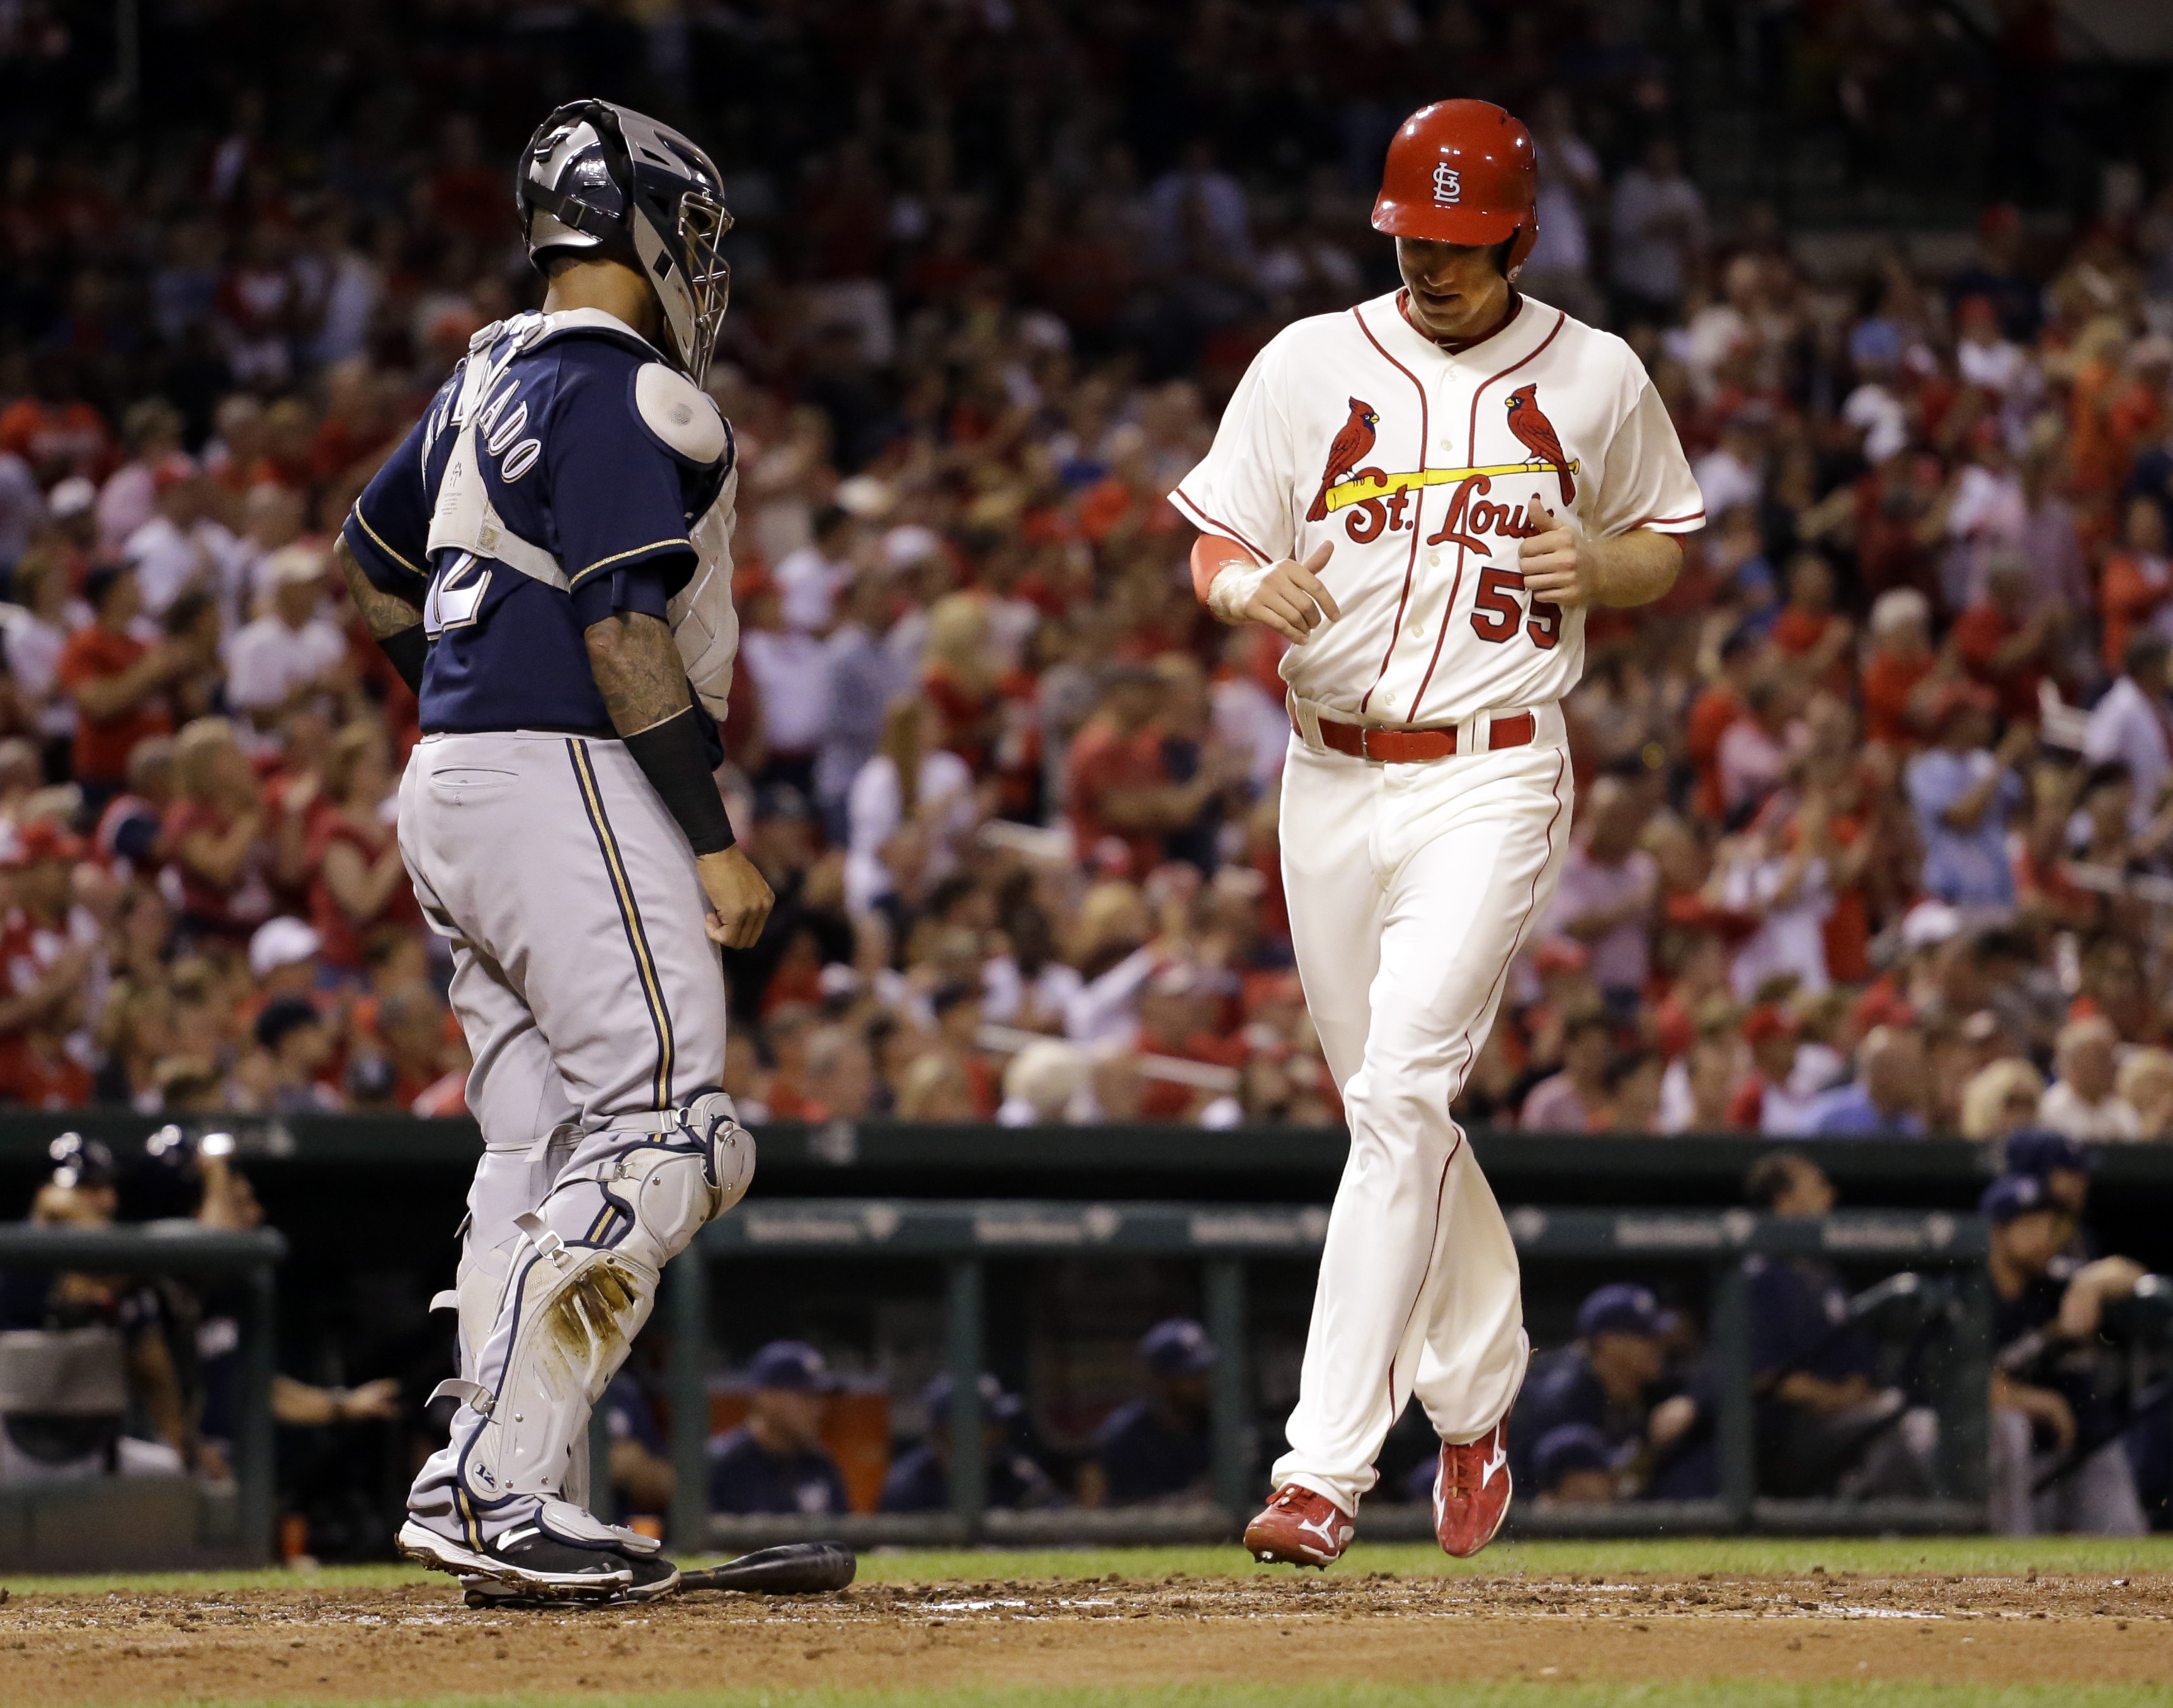 St. Louis Cardinals' Stephen Piscotty, right, scores past Milwaukee Brewers catcher Martin Maldonado on a double by Matt Holliday during the second inning of a baseball game on Saturday, Sept. 26, 2015, in St. Louis. (AP Photo/Jeff Roberson)